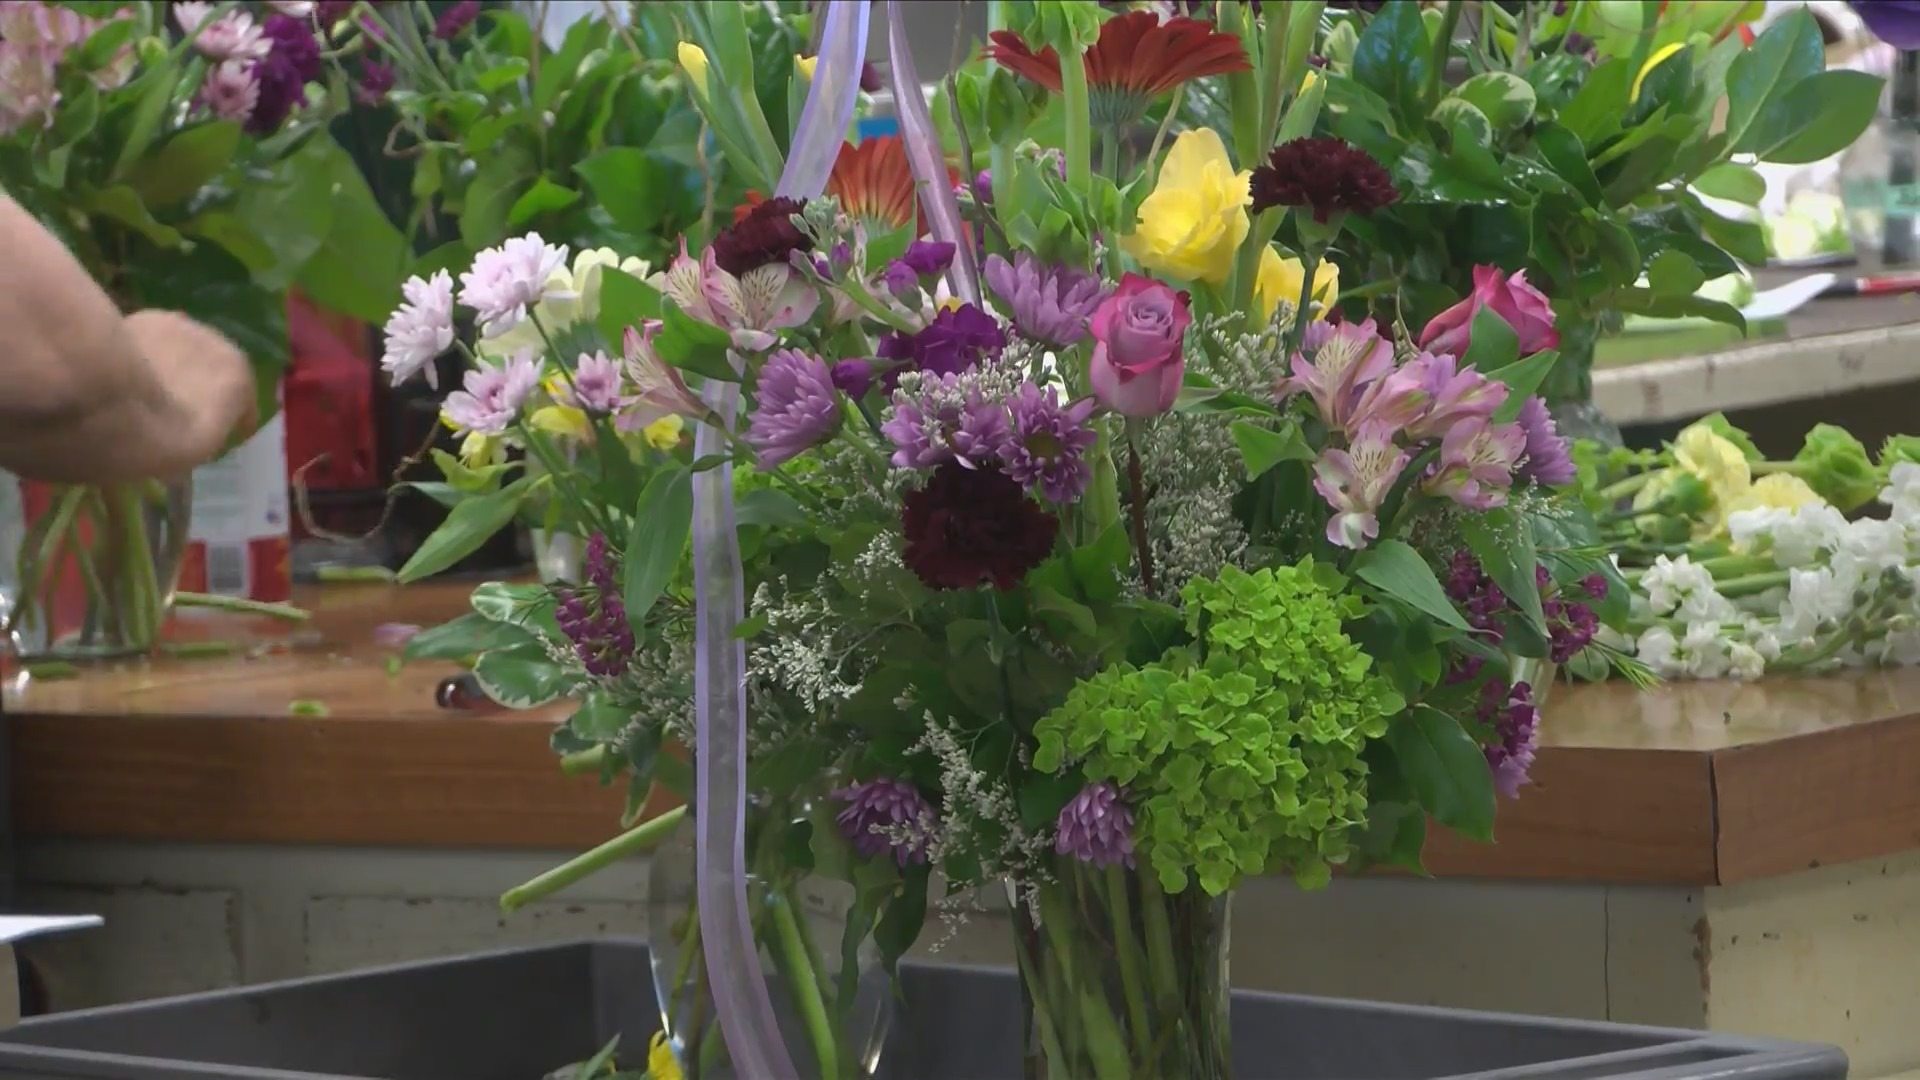 Flower shortage concerns as Mother's Day approaches